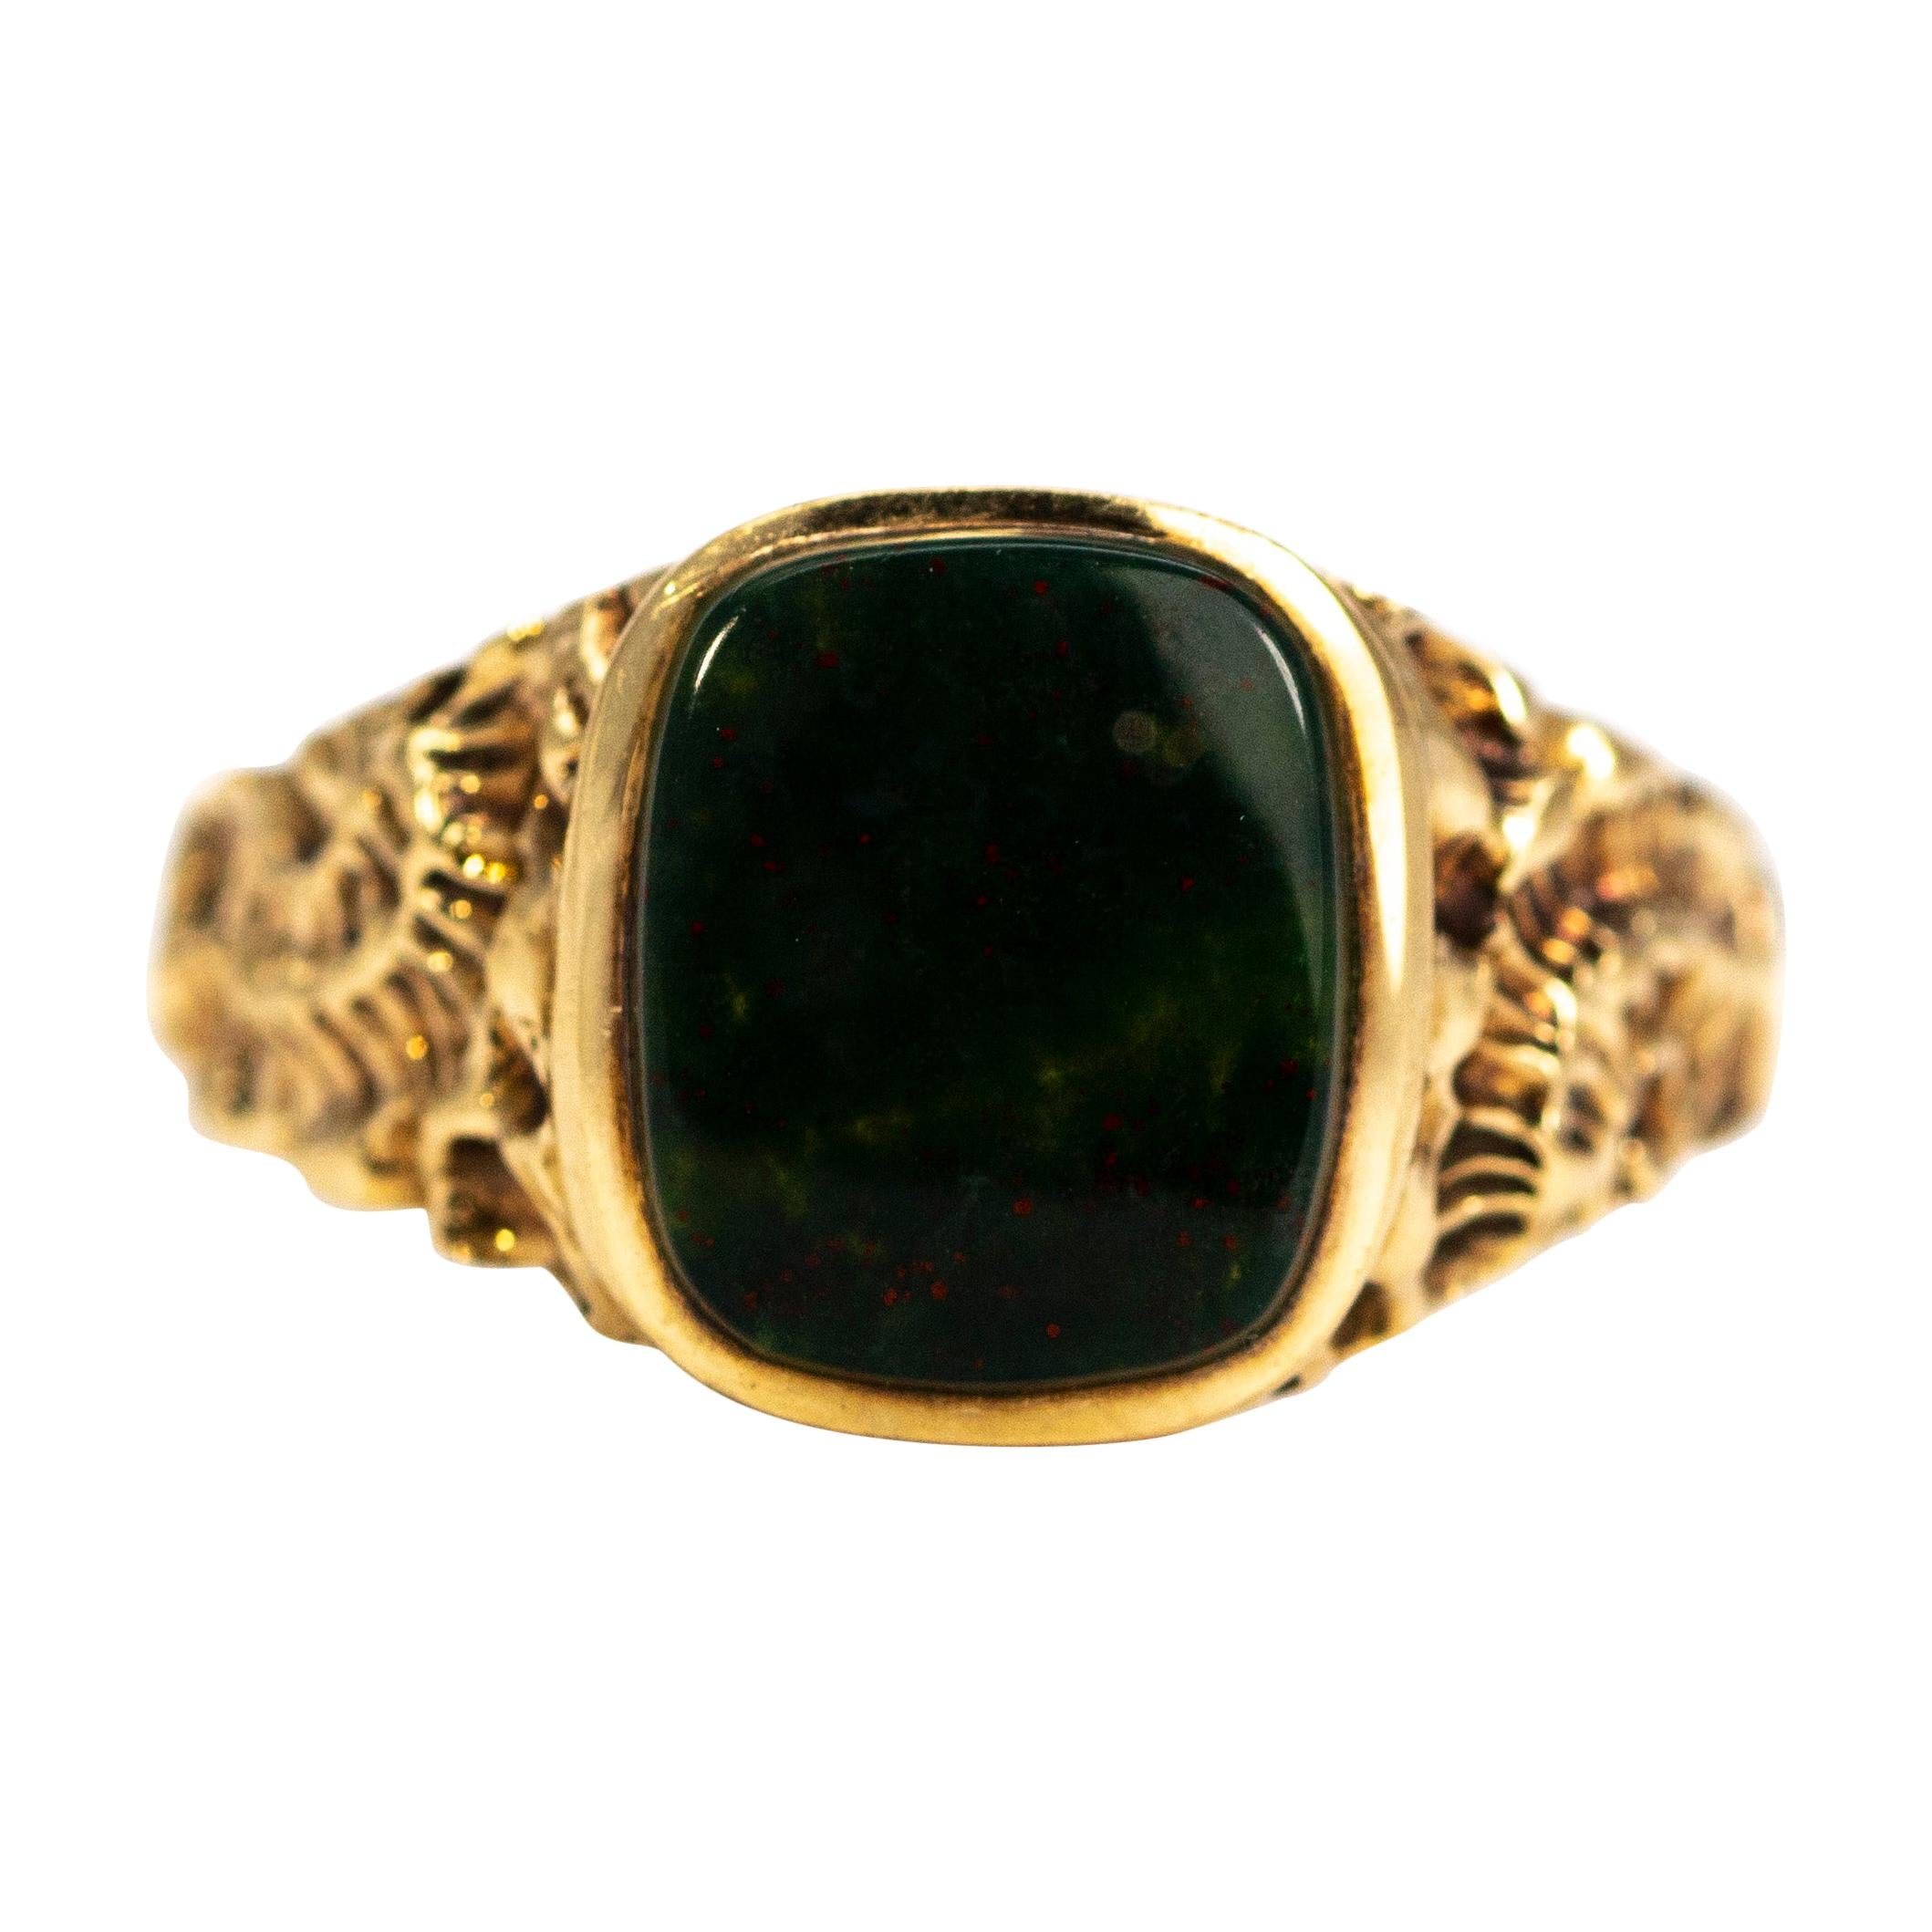 Antique Bloodstone and 9 Carat Gold Signet Ring at 1stdibs